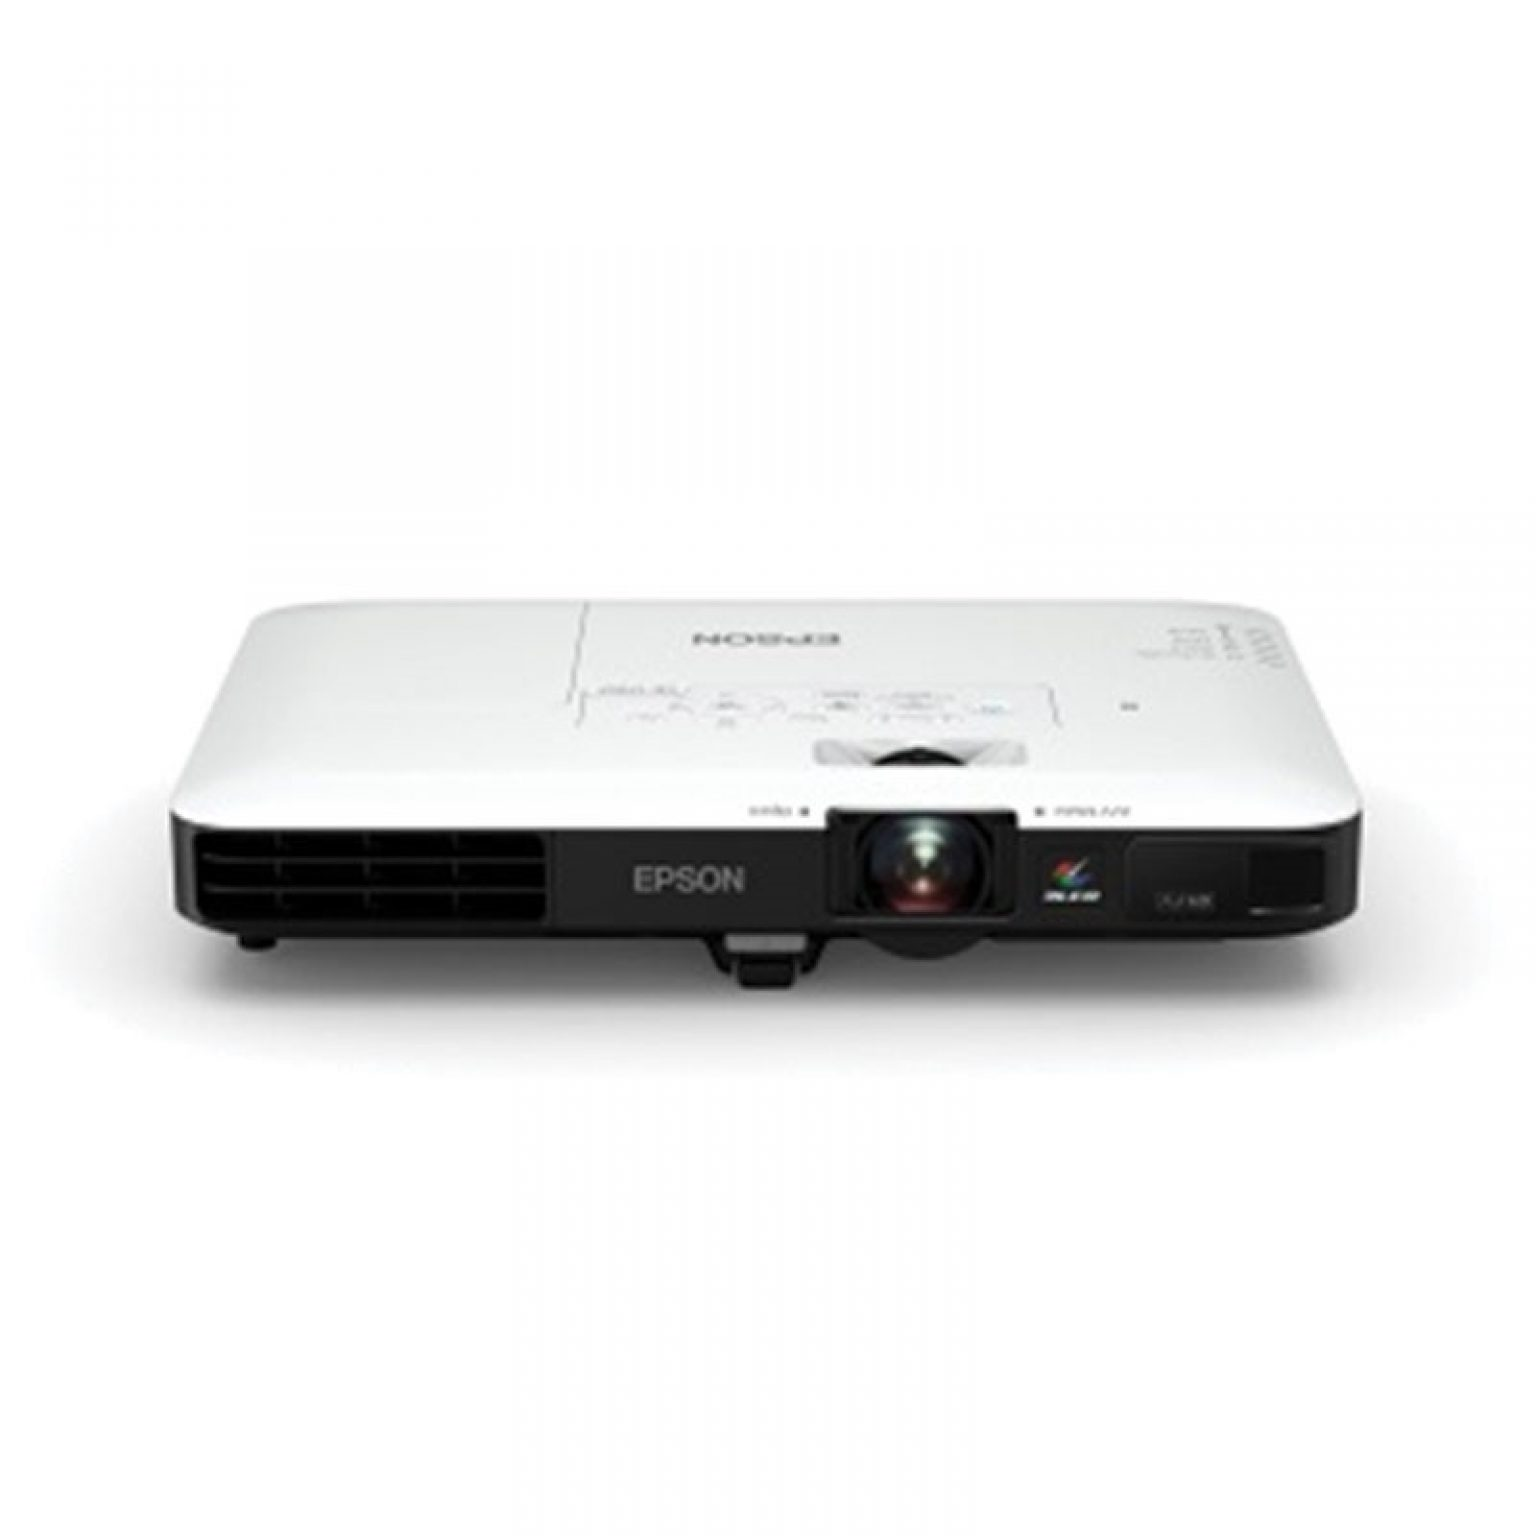 EPSON - Projector EB-1795F